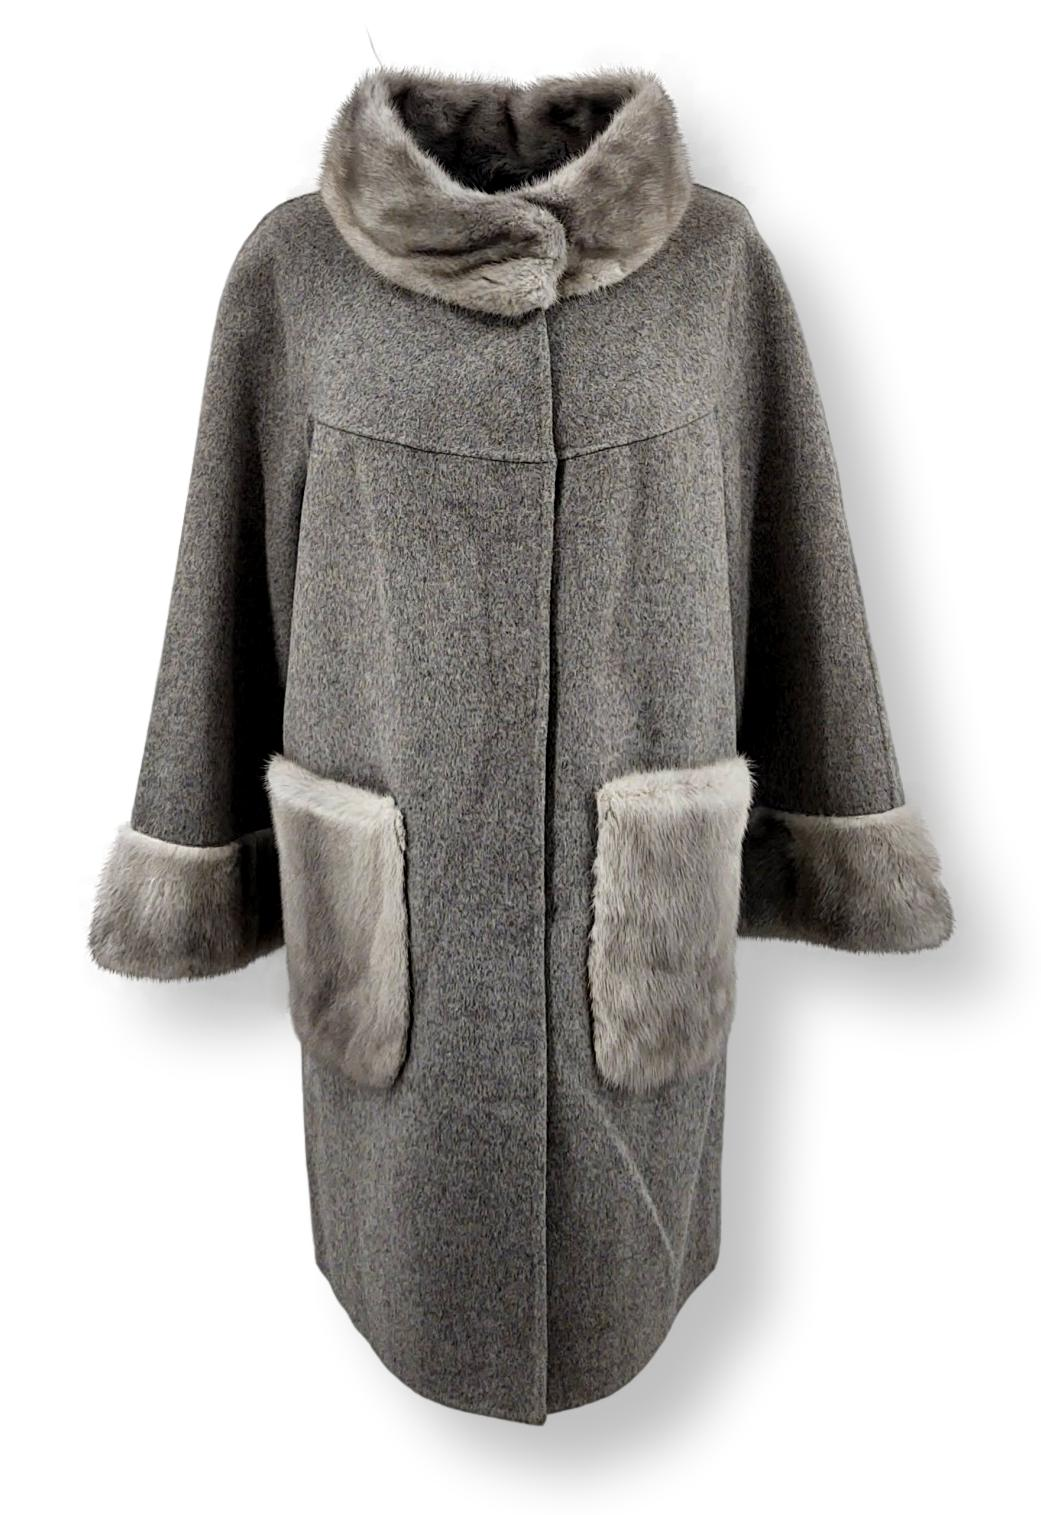 WHL9297 - Wool - Women - Grey